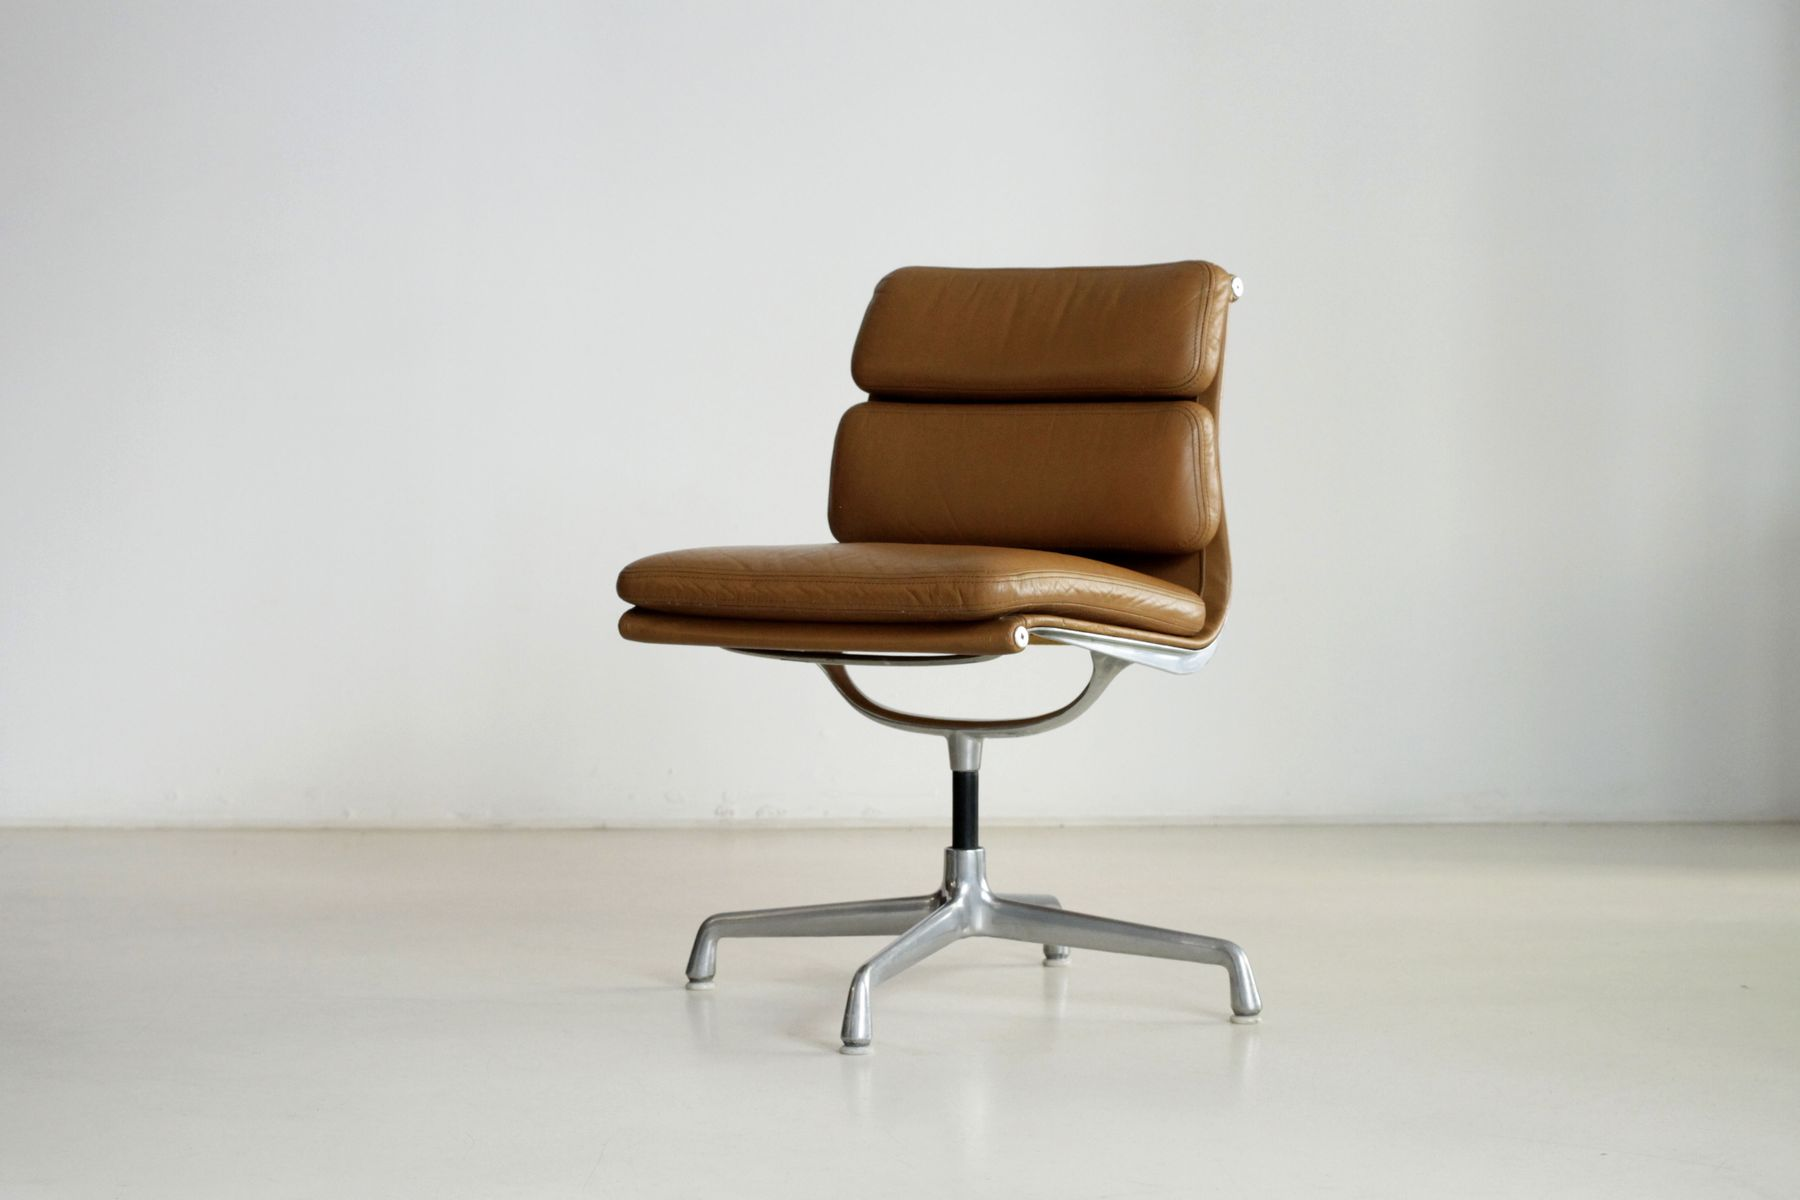 Brown soft pad swivel chair by charles eames for herman miller for sale at pa - Herman miller france ...